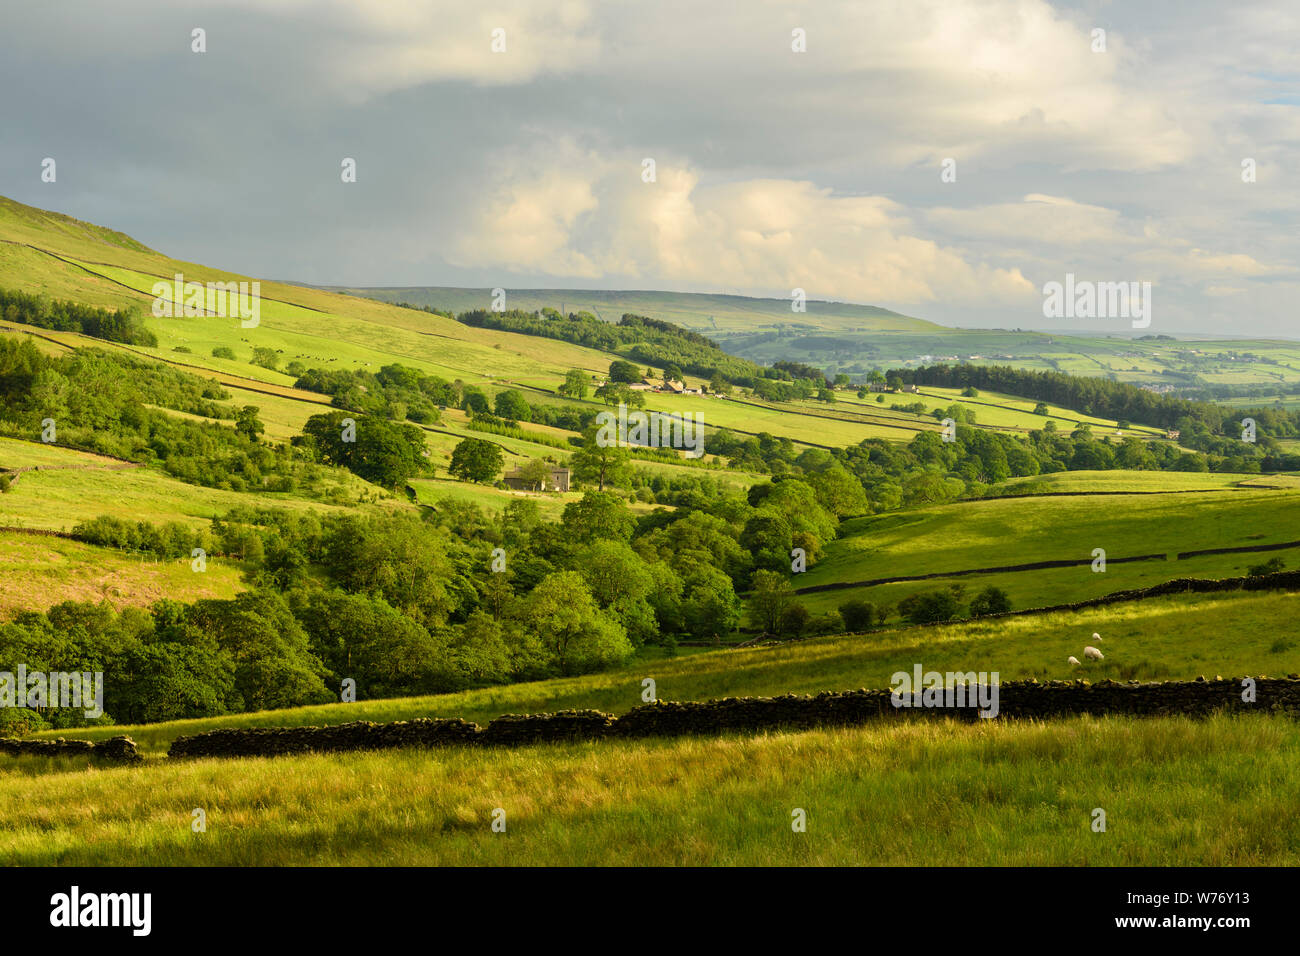 Long-distance picturesque evening view to Wharfedale (rolling clouds & hills, green pasture, sunlit valley) - Beamsley, Yorkshire Dales, England, UK. Stock Photo